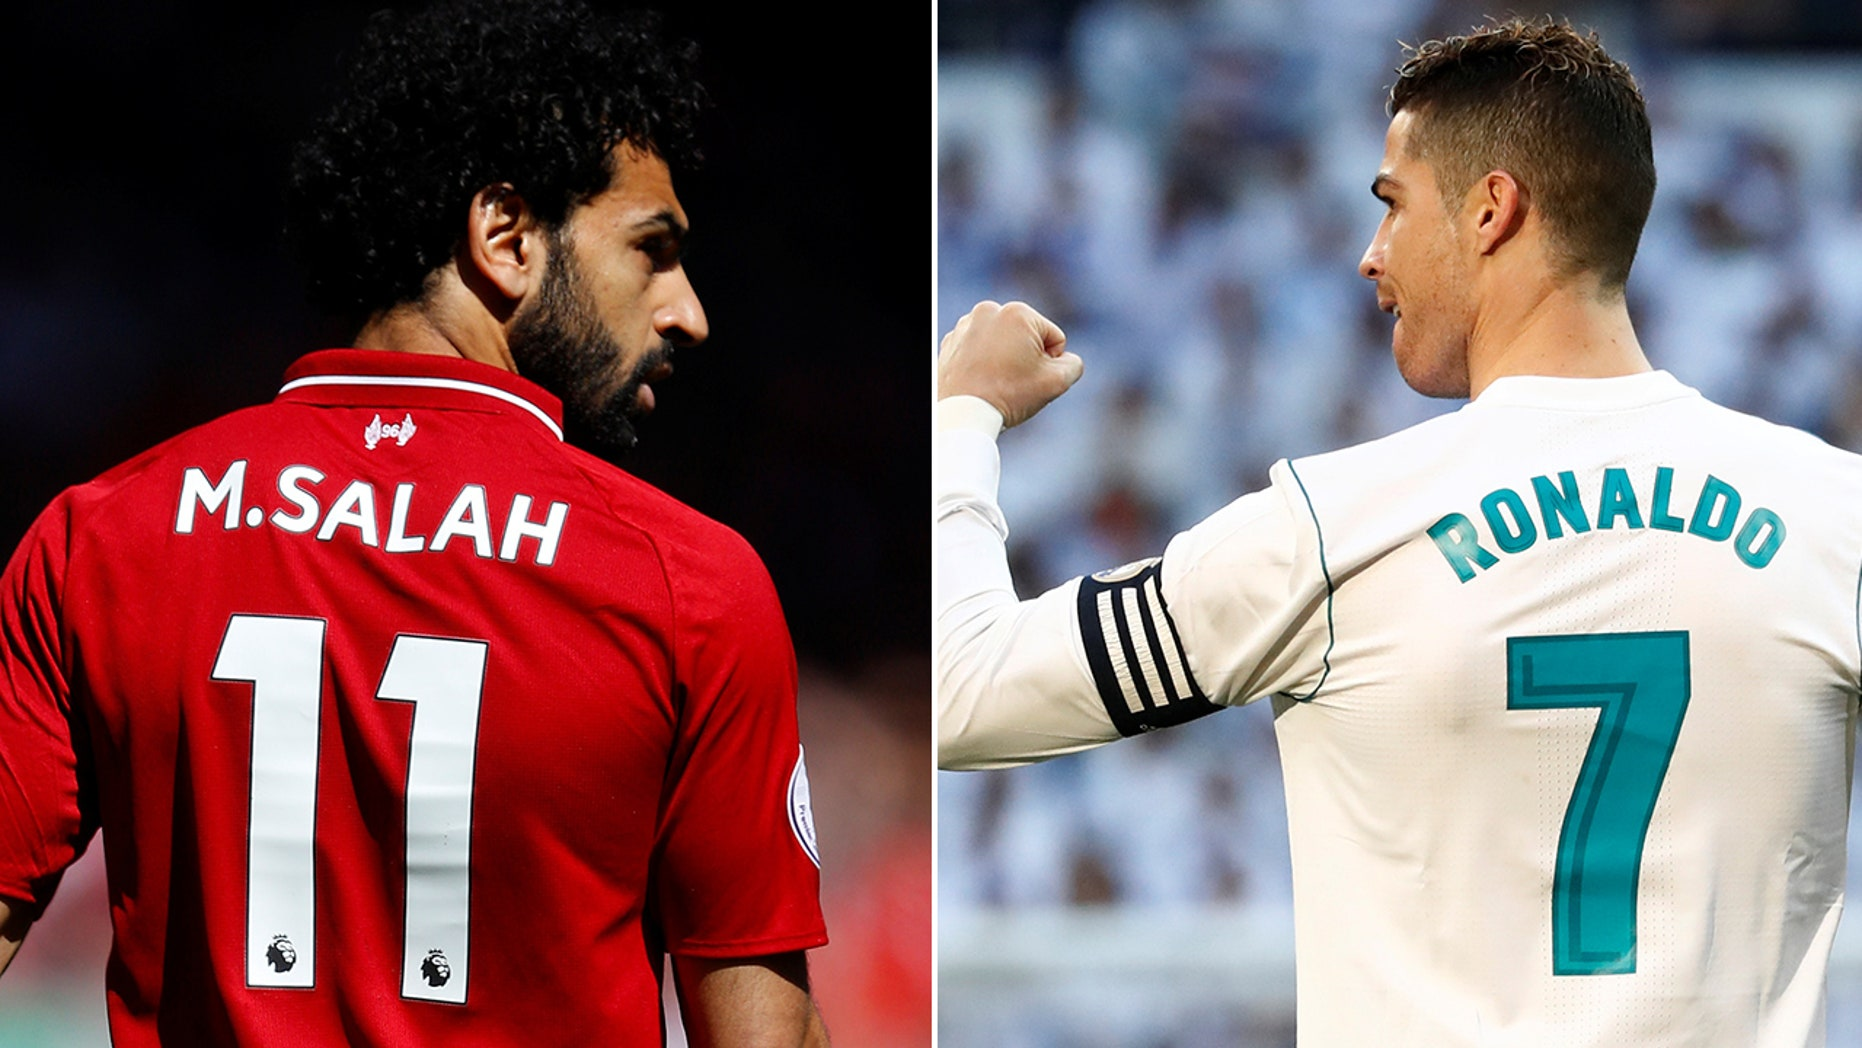 Liverpool and Real Madrid will face off in the Champions League final in Kiev, Ukraine on Saturday.